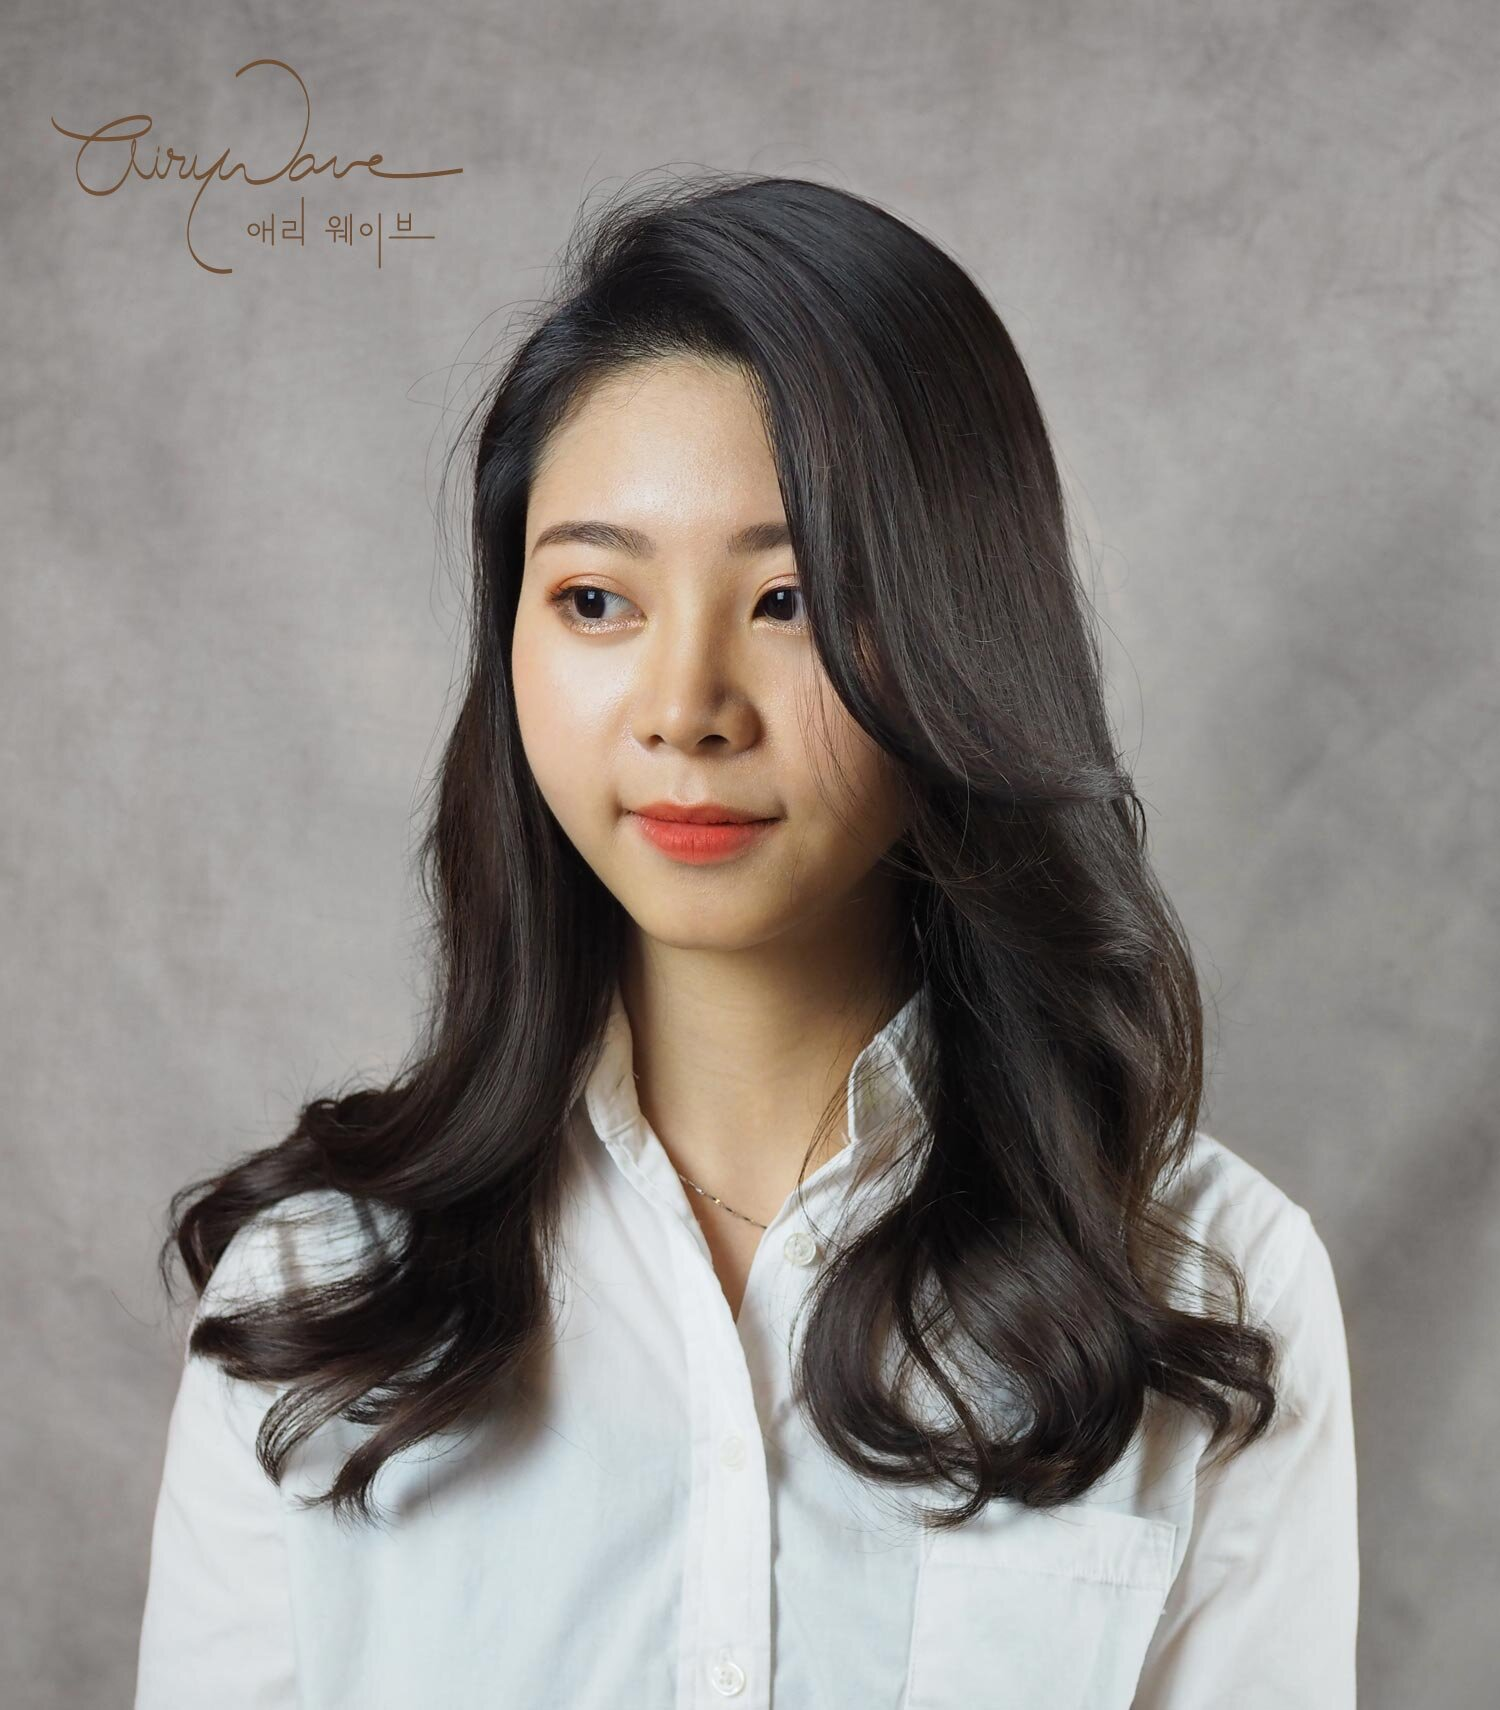 Airy Wave 애리 웨이브: You Can Have Hair Like Your Favourite ...에 대한 갤러리